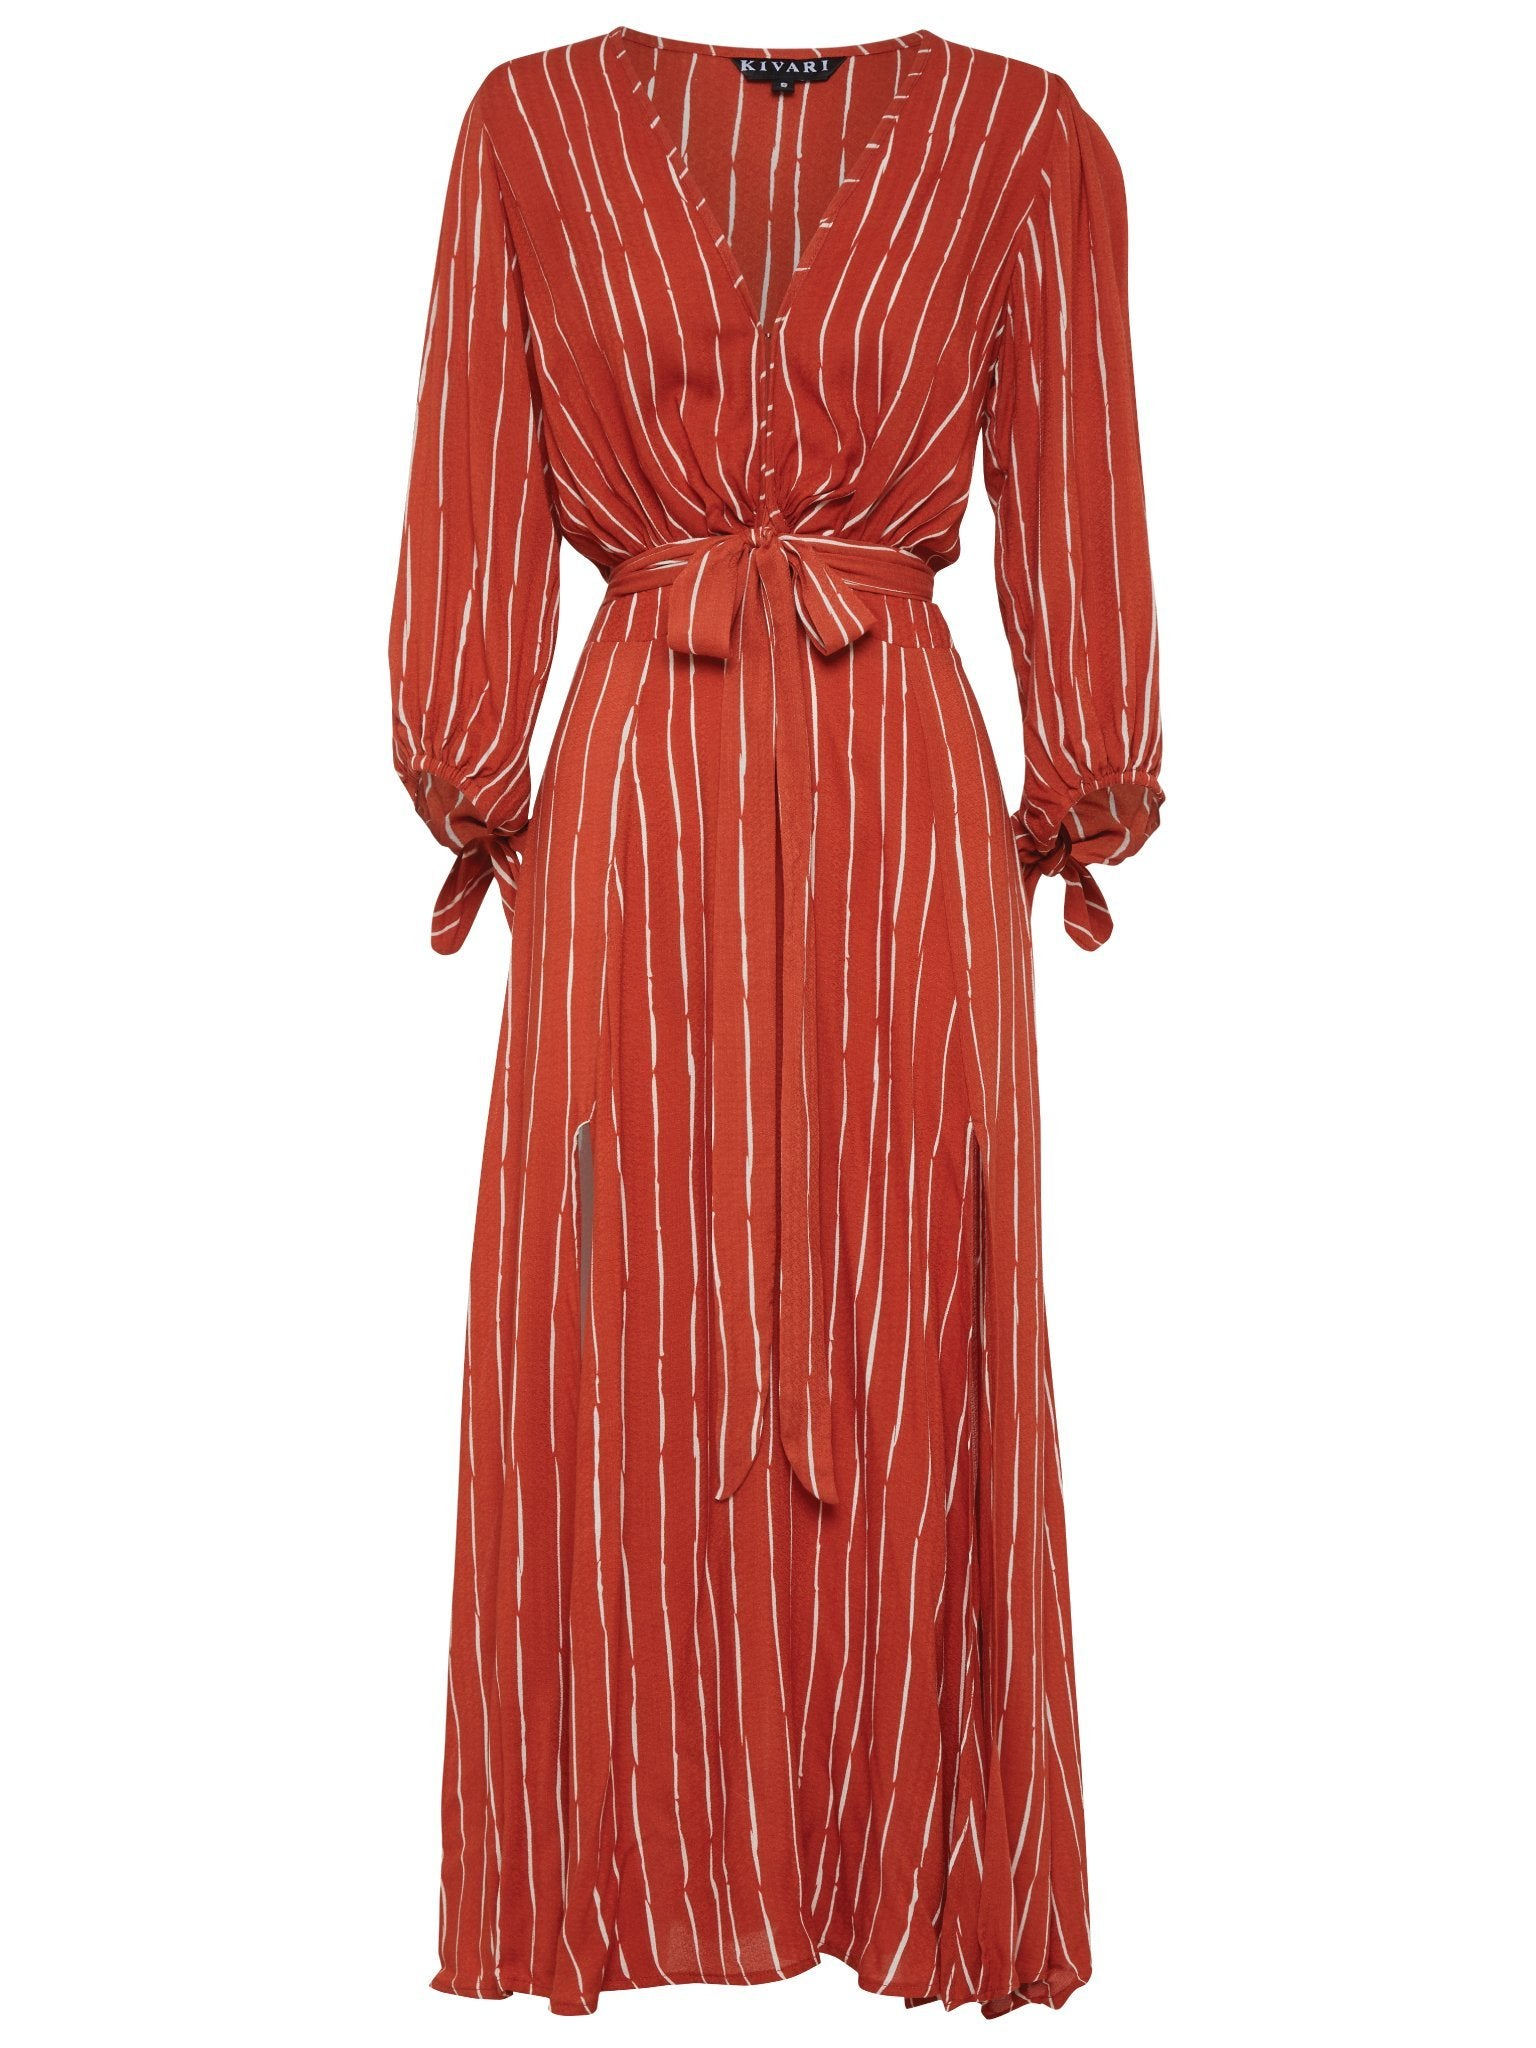 Kivari Coco Rust Tie Front Maxi Dress